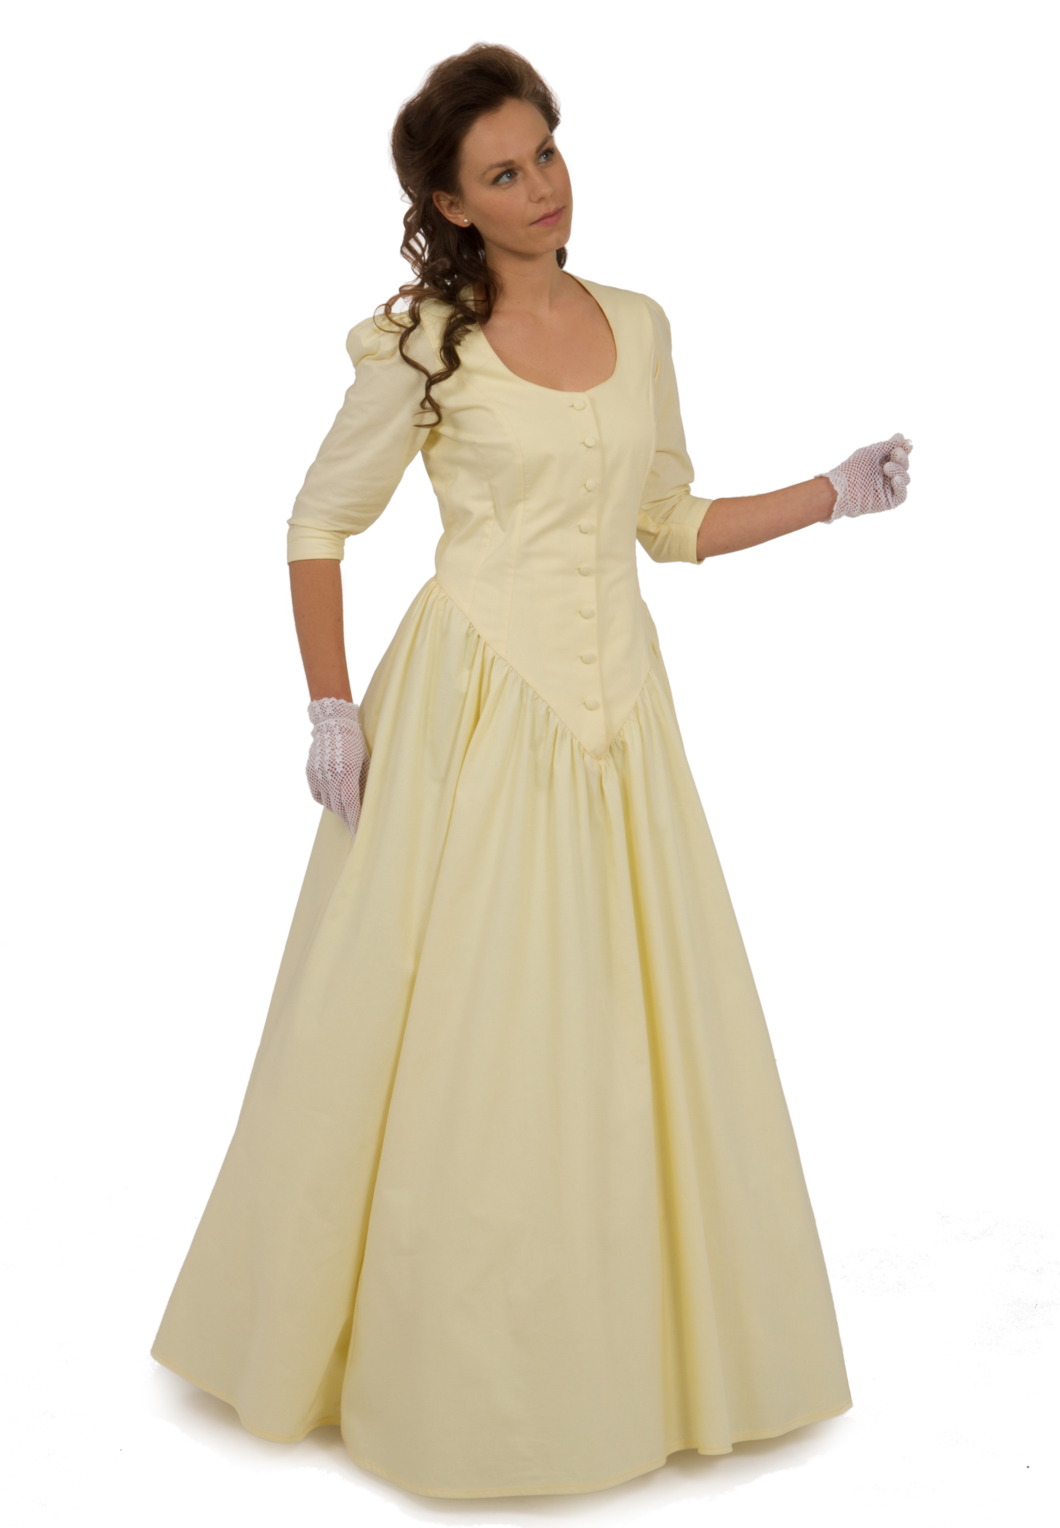 Cotton Victorian Dress Recollections